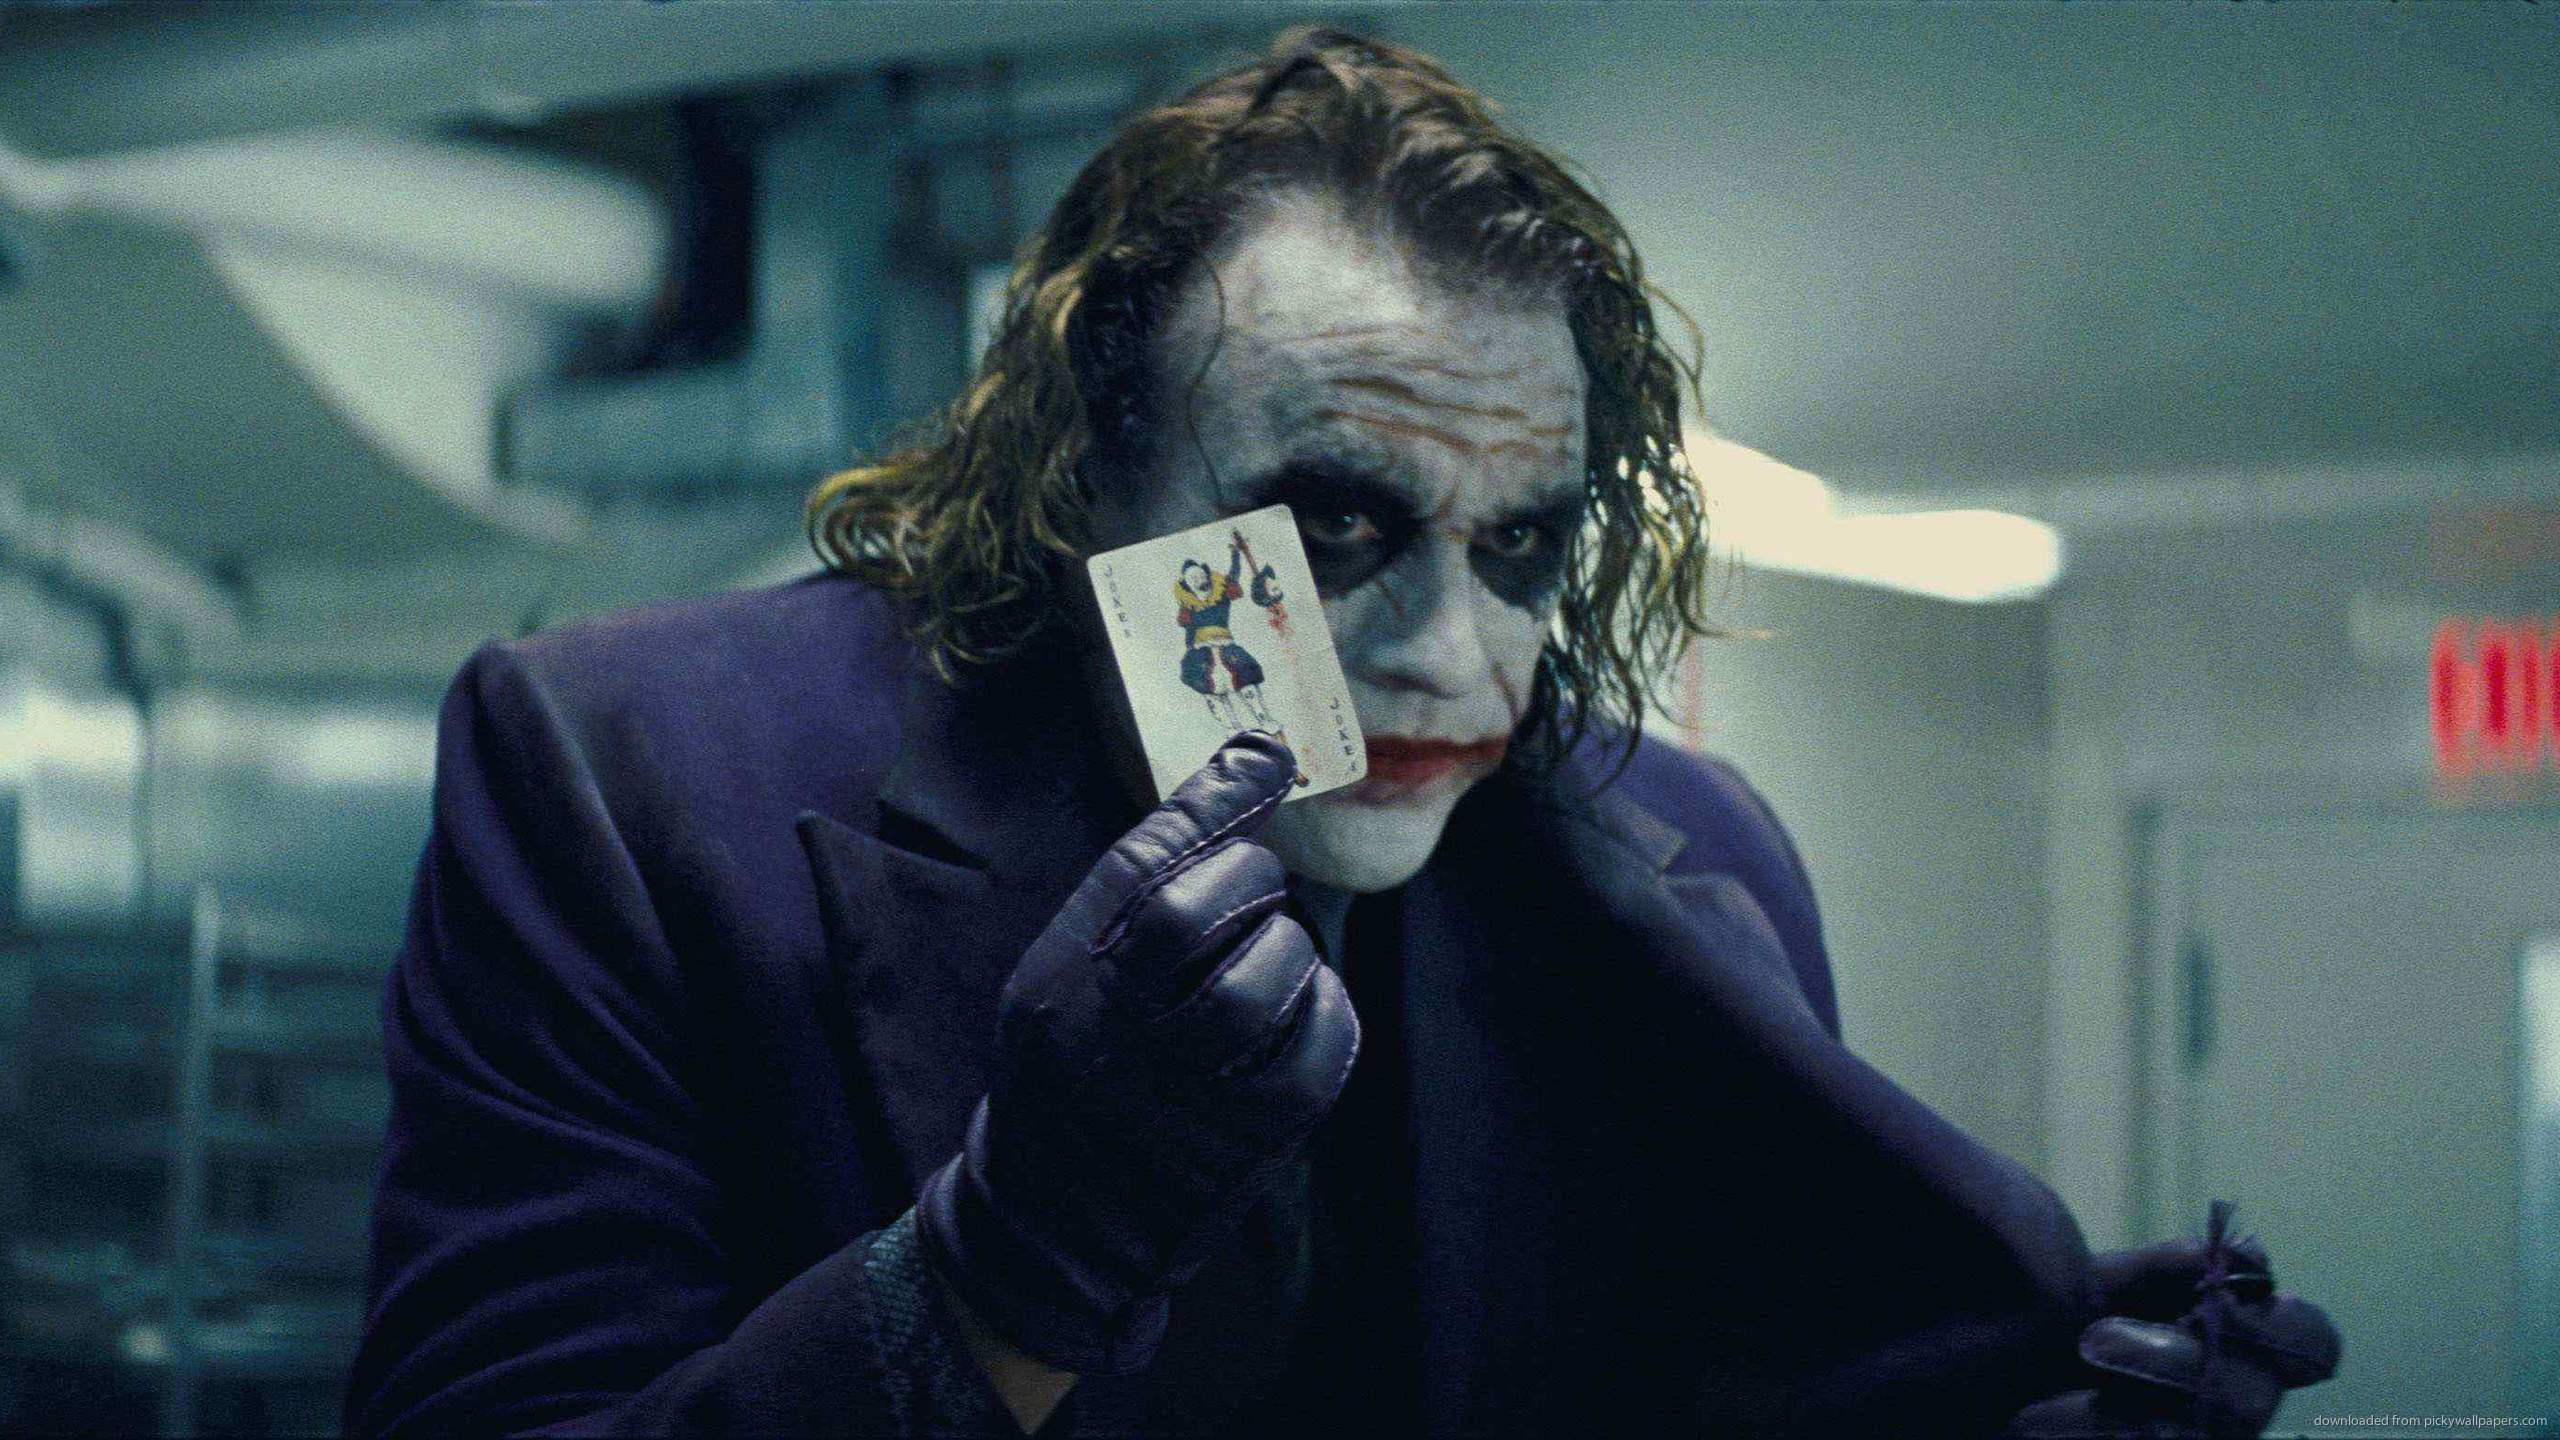 joker-with-a-card.jpg